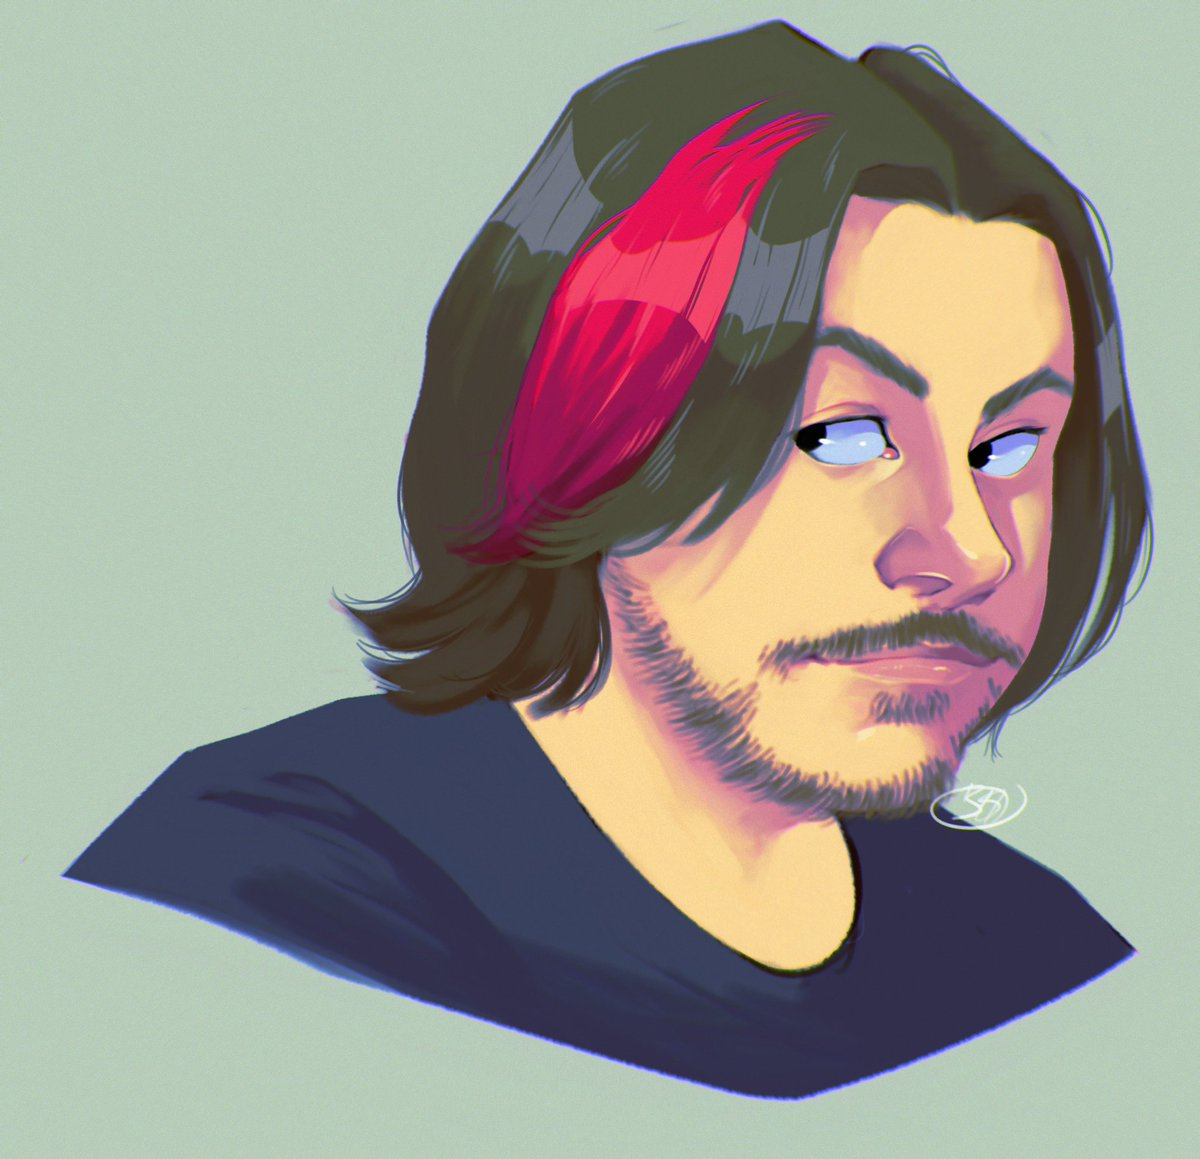 i'm still in this art funk but i had to draw the fresh pink lewk 💕✨ @egoraptor @GameGrumps